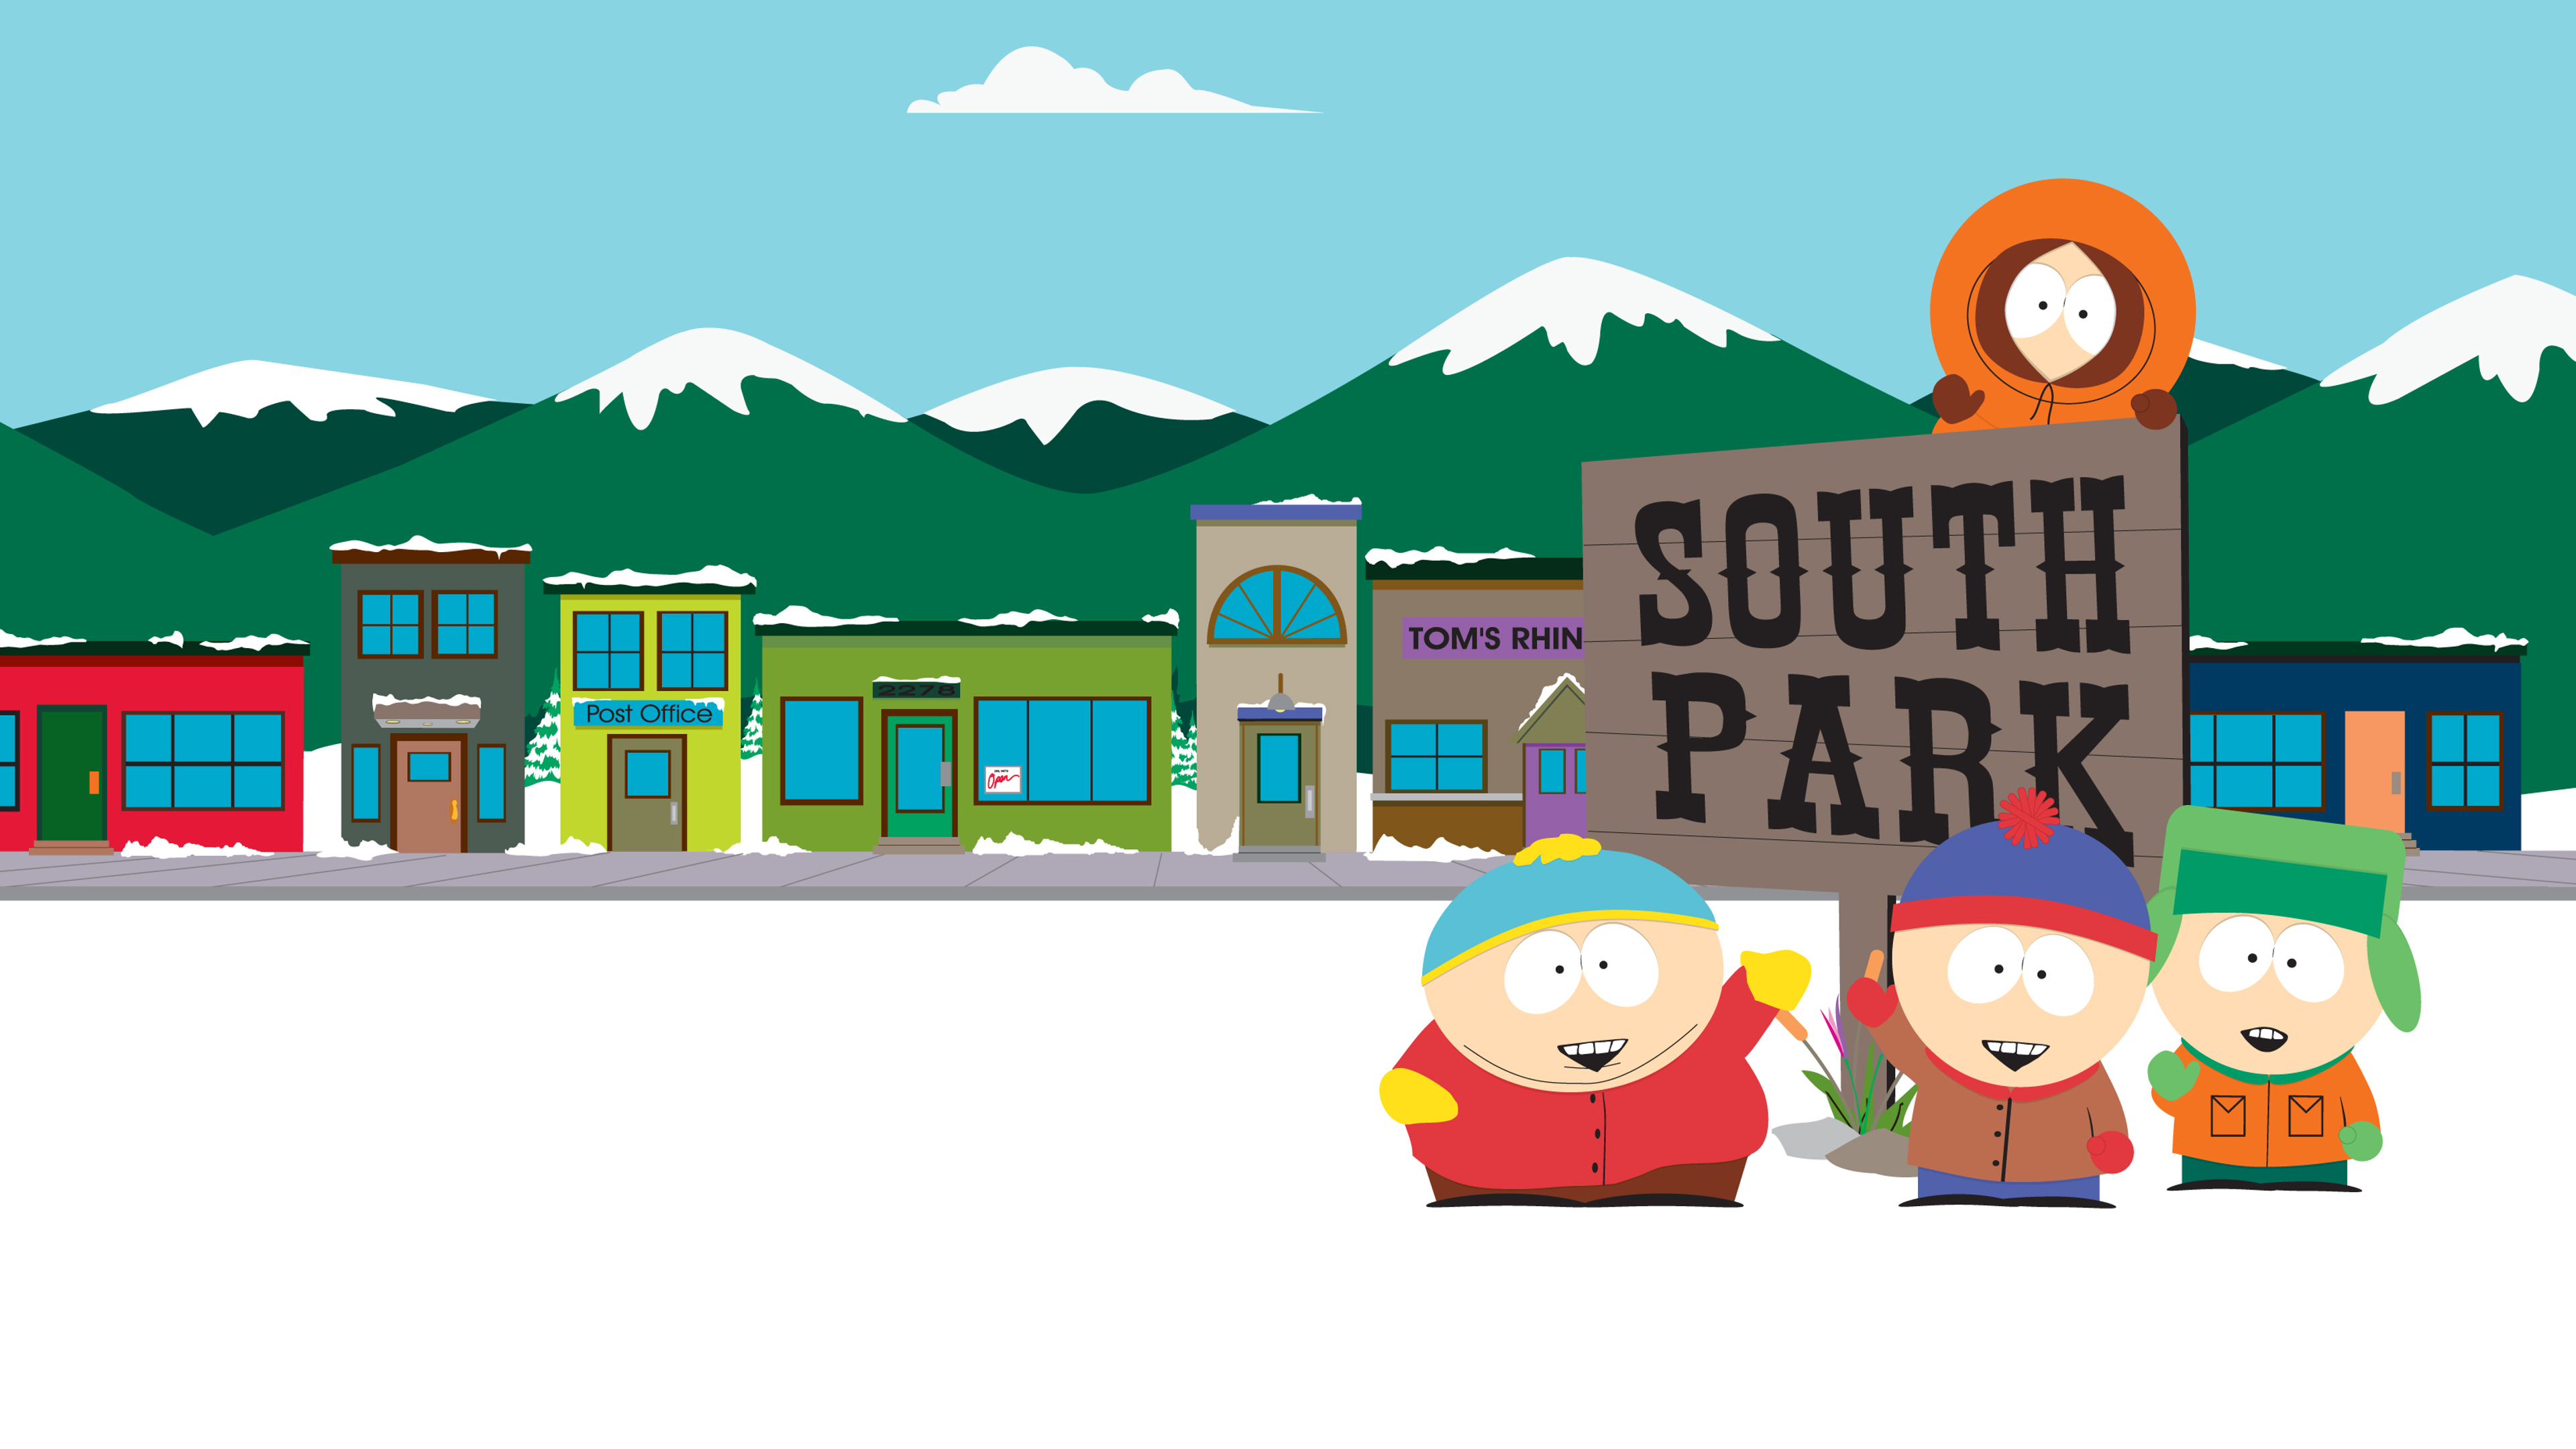 South park 4k ultra hd wallpaper and background image - Kyle wallpaper ...